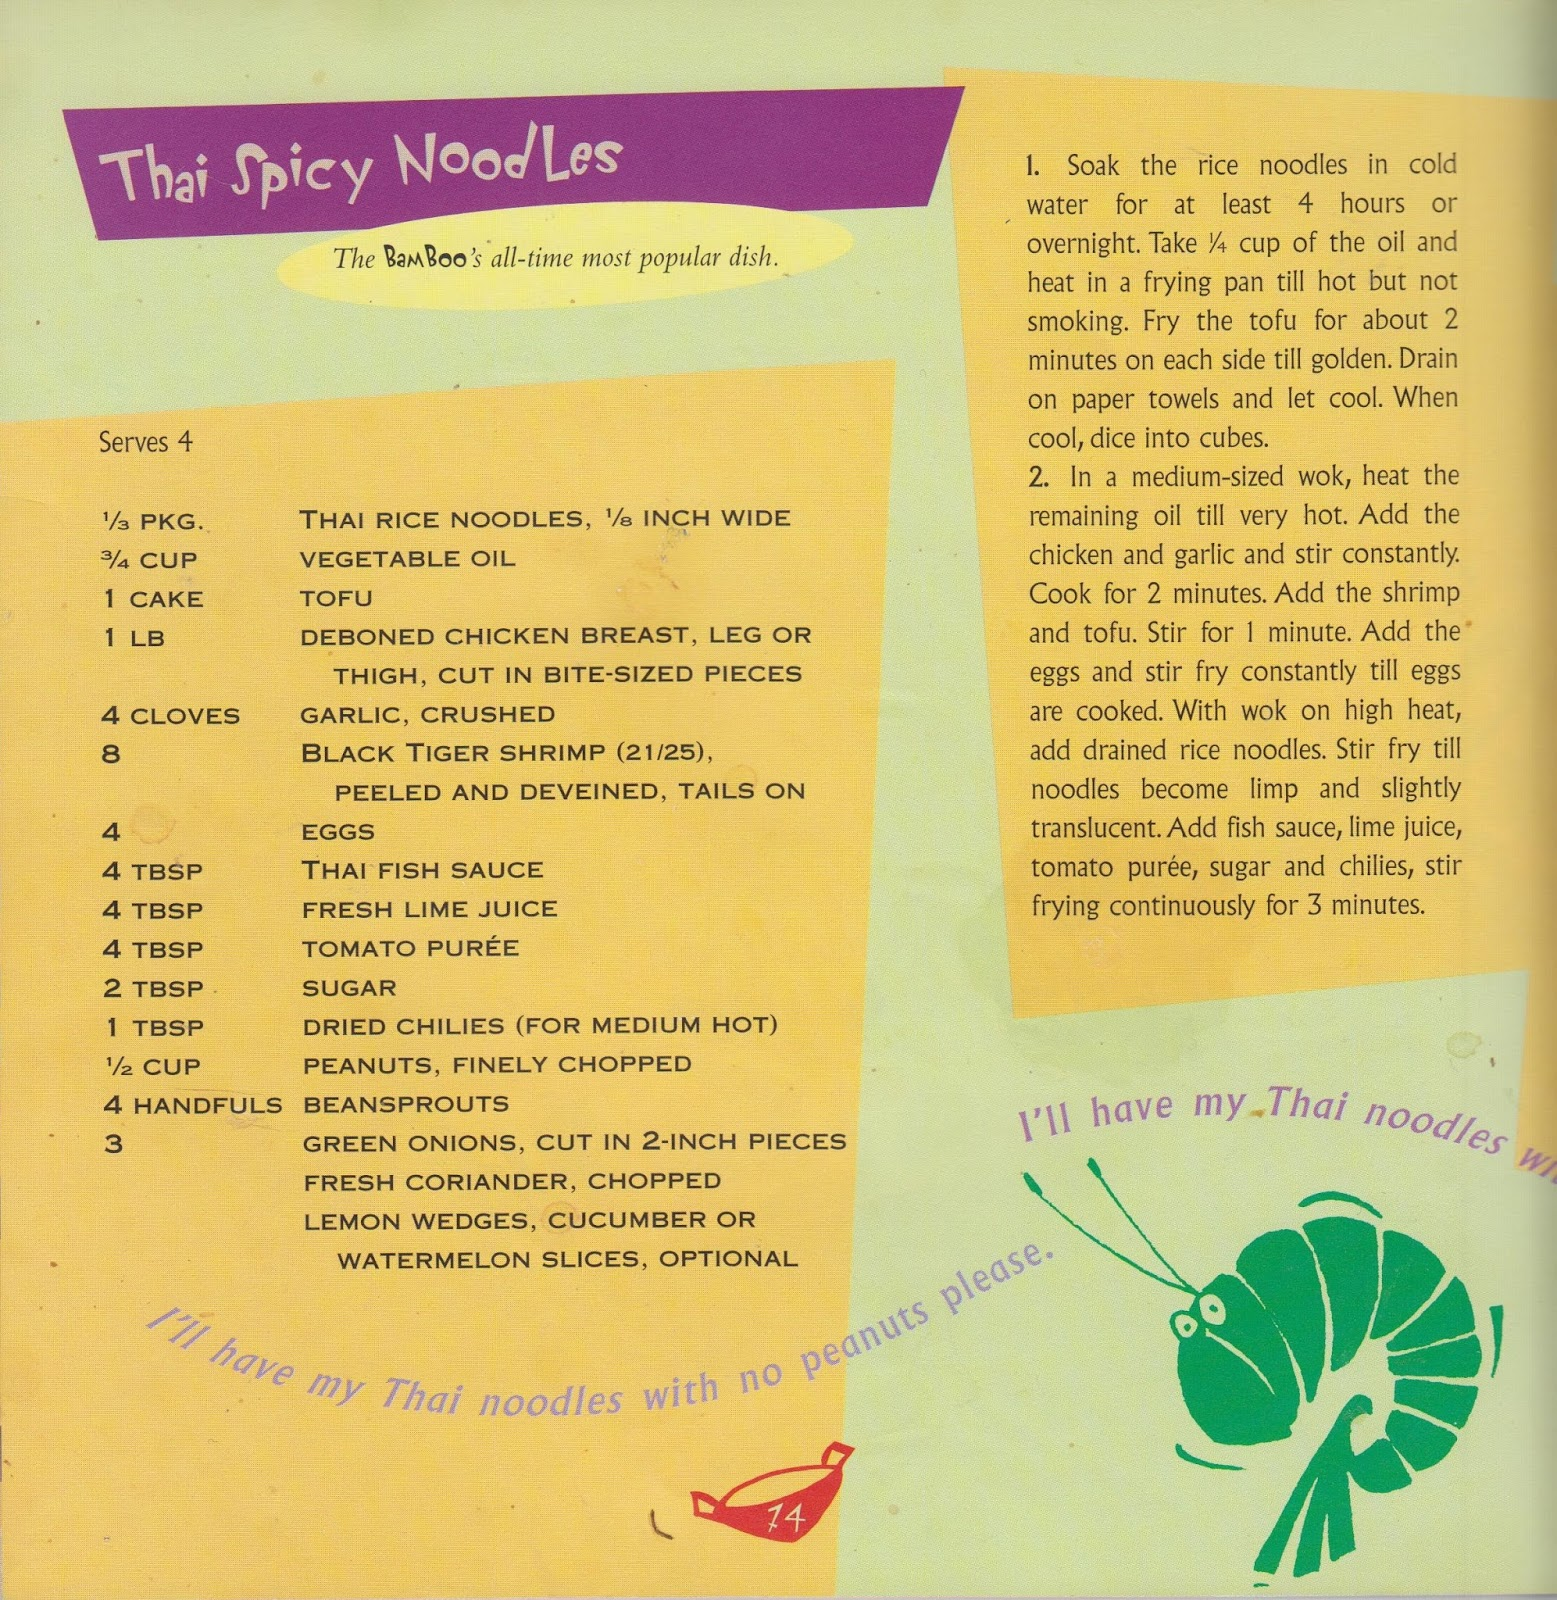 A colourful page featuring the recipe for the BamBoo's dish, Thai Spicy Noodles, including an ingredients list and method for cooking.